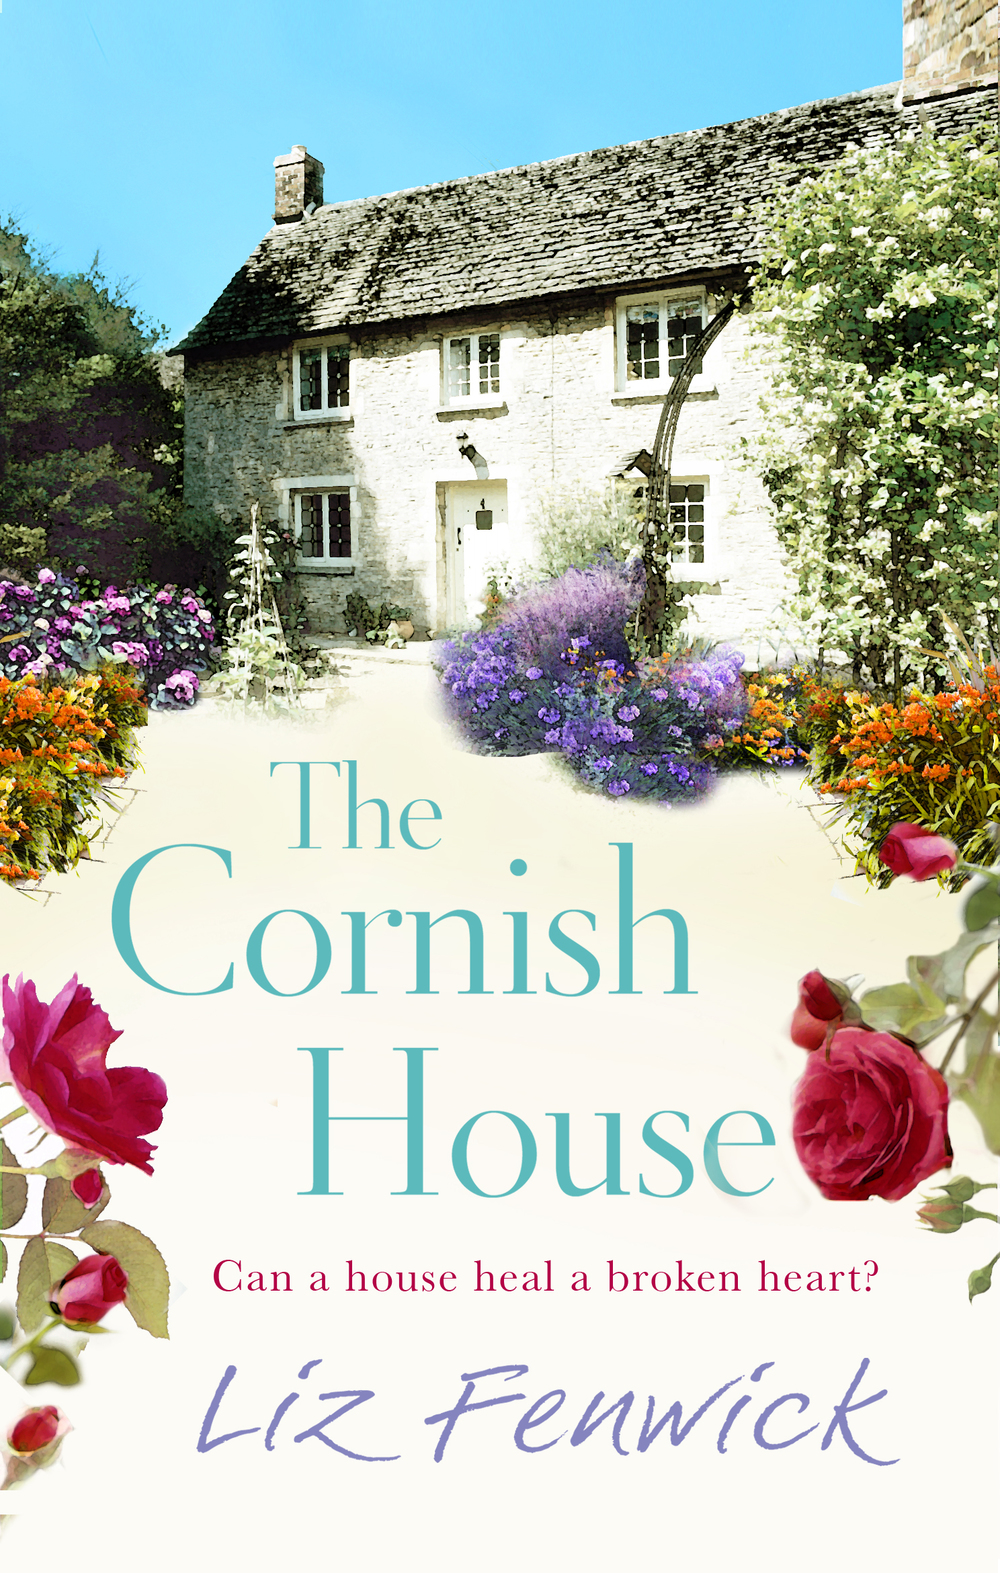 THE CORNISH HOUSE Contemporary, 341 pages Orion - May 24, 2012 Trevenen is beautiful but neglected, a rambling house steeped in history. Maddie is enchanted by it and determined to learn as much as she can about its past. As she discovers the stories of generations of women who've lived there before, Maddie begins to feel her life is somehow intertwined within its walls. Can a house heal a broken heart?